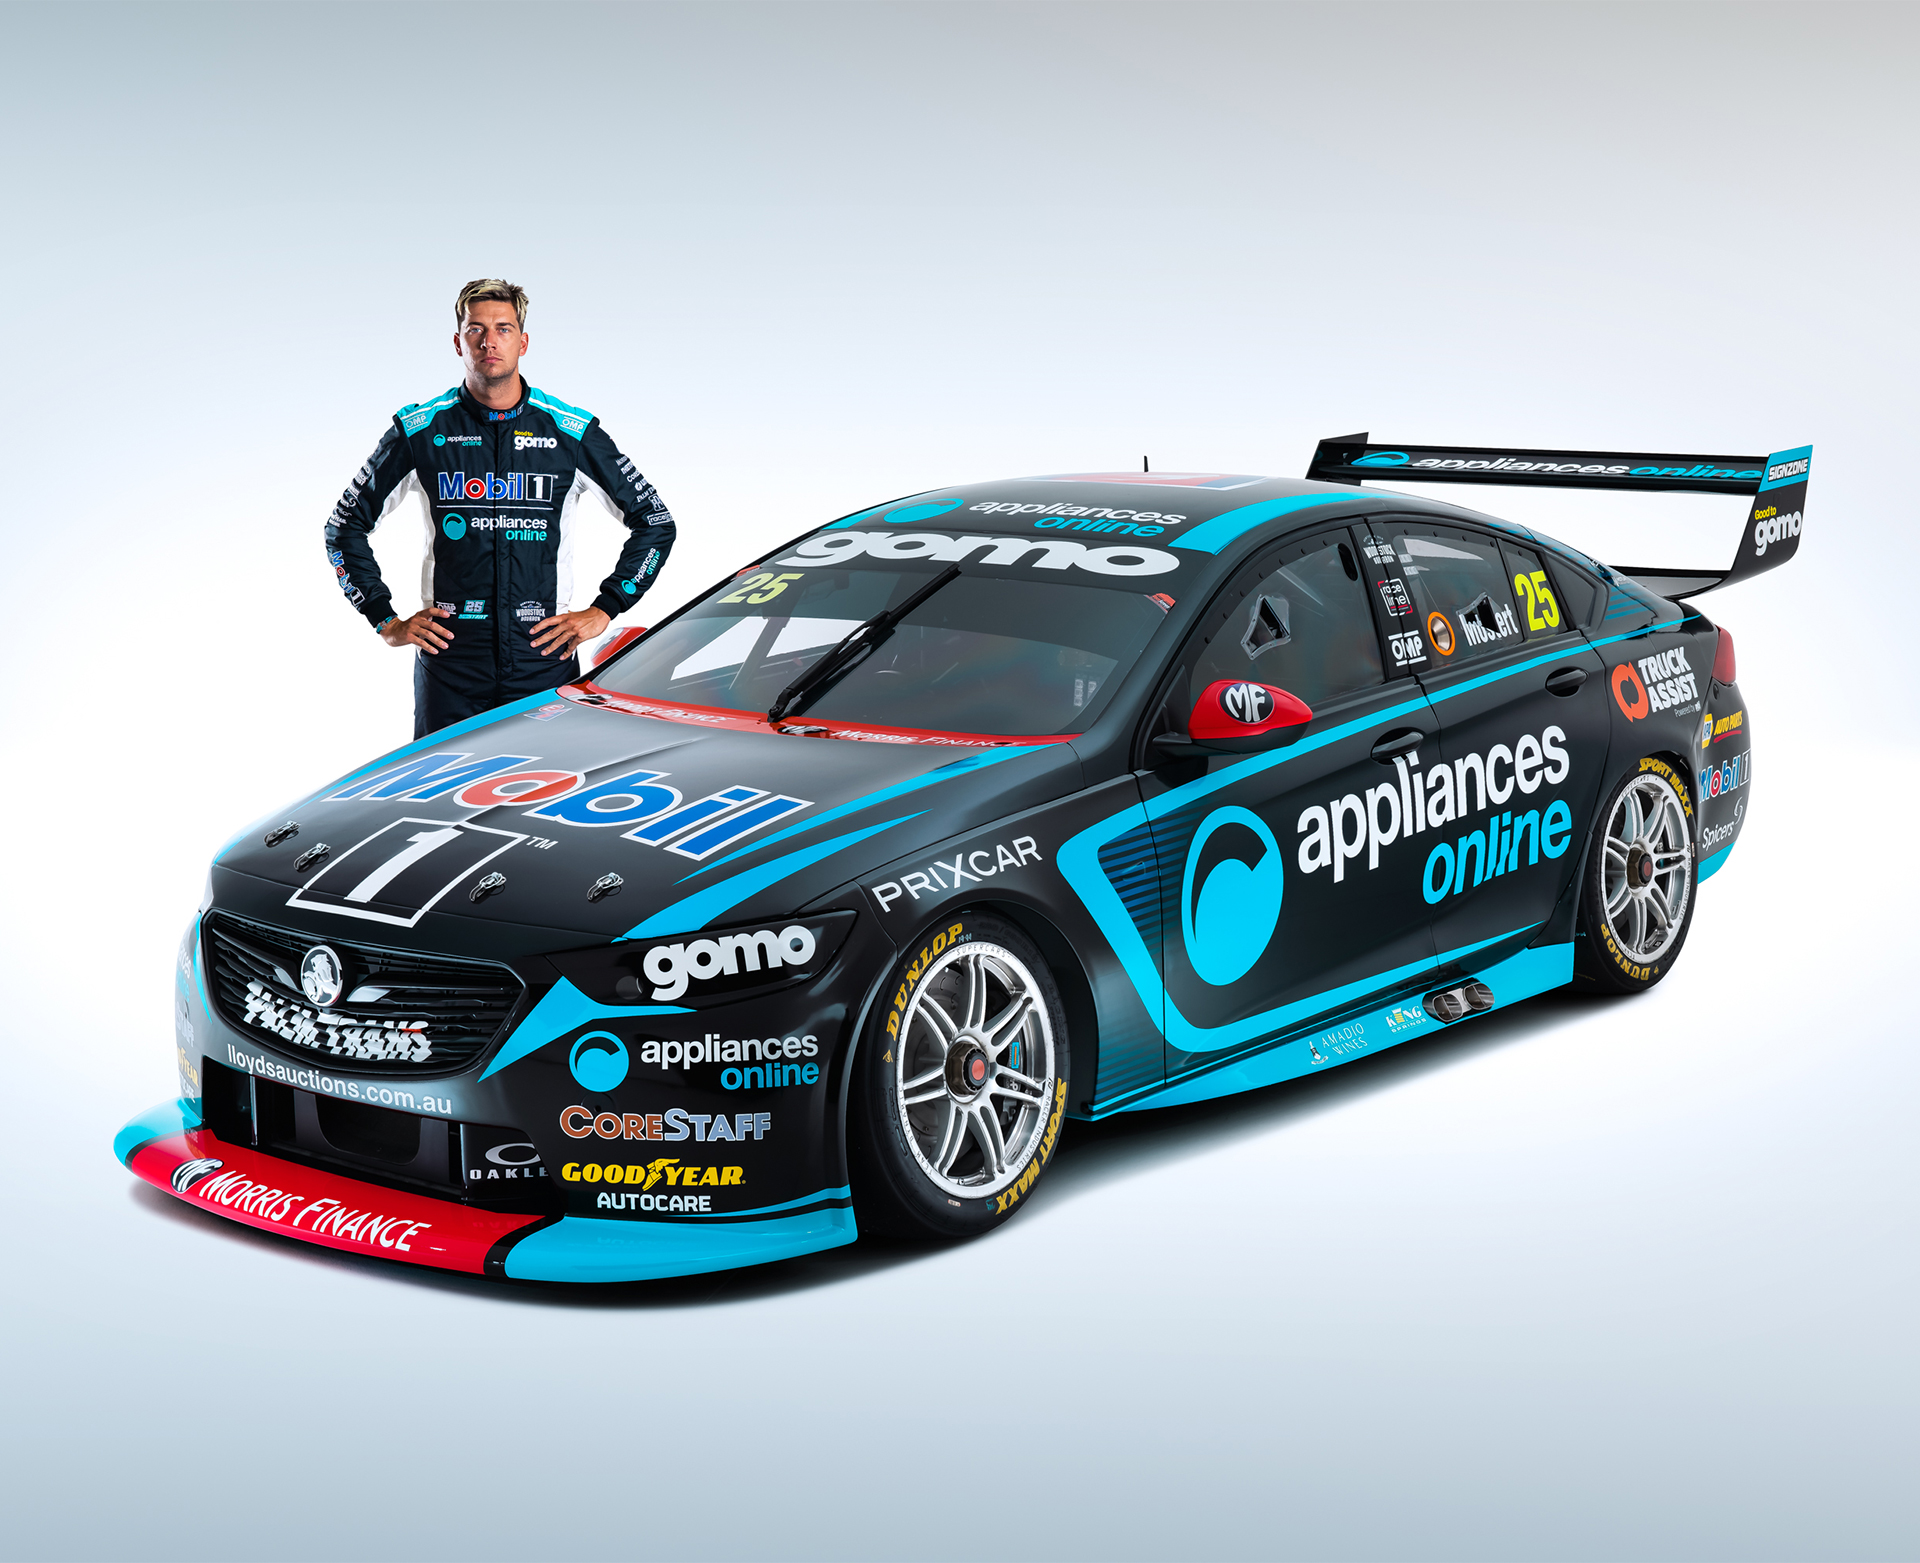 Chaz Mostert with his new Mobil 1 Appliances Online Racing No. 25.